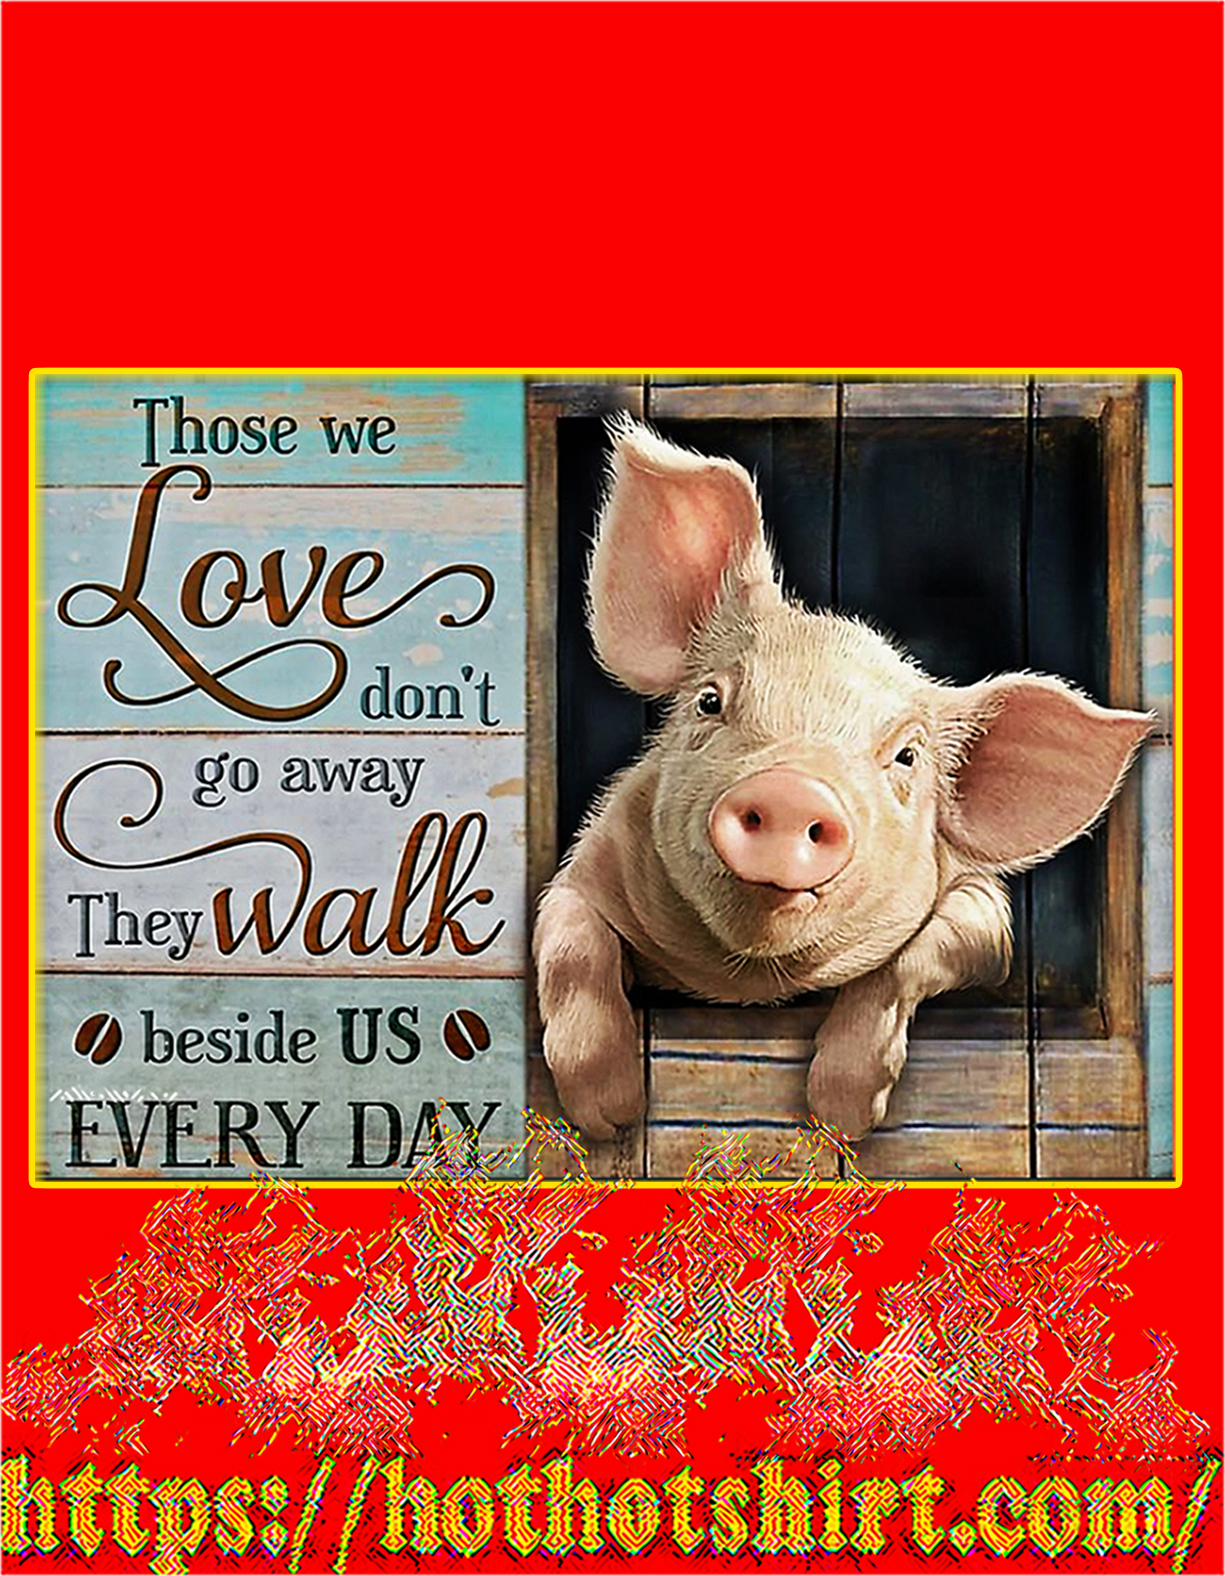 Pig Those we love don't go away poster - A4